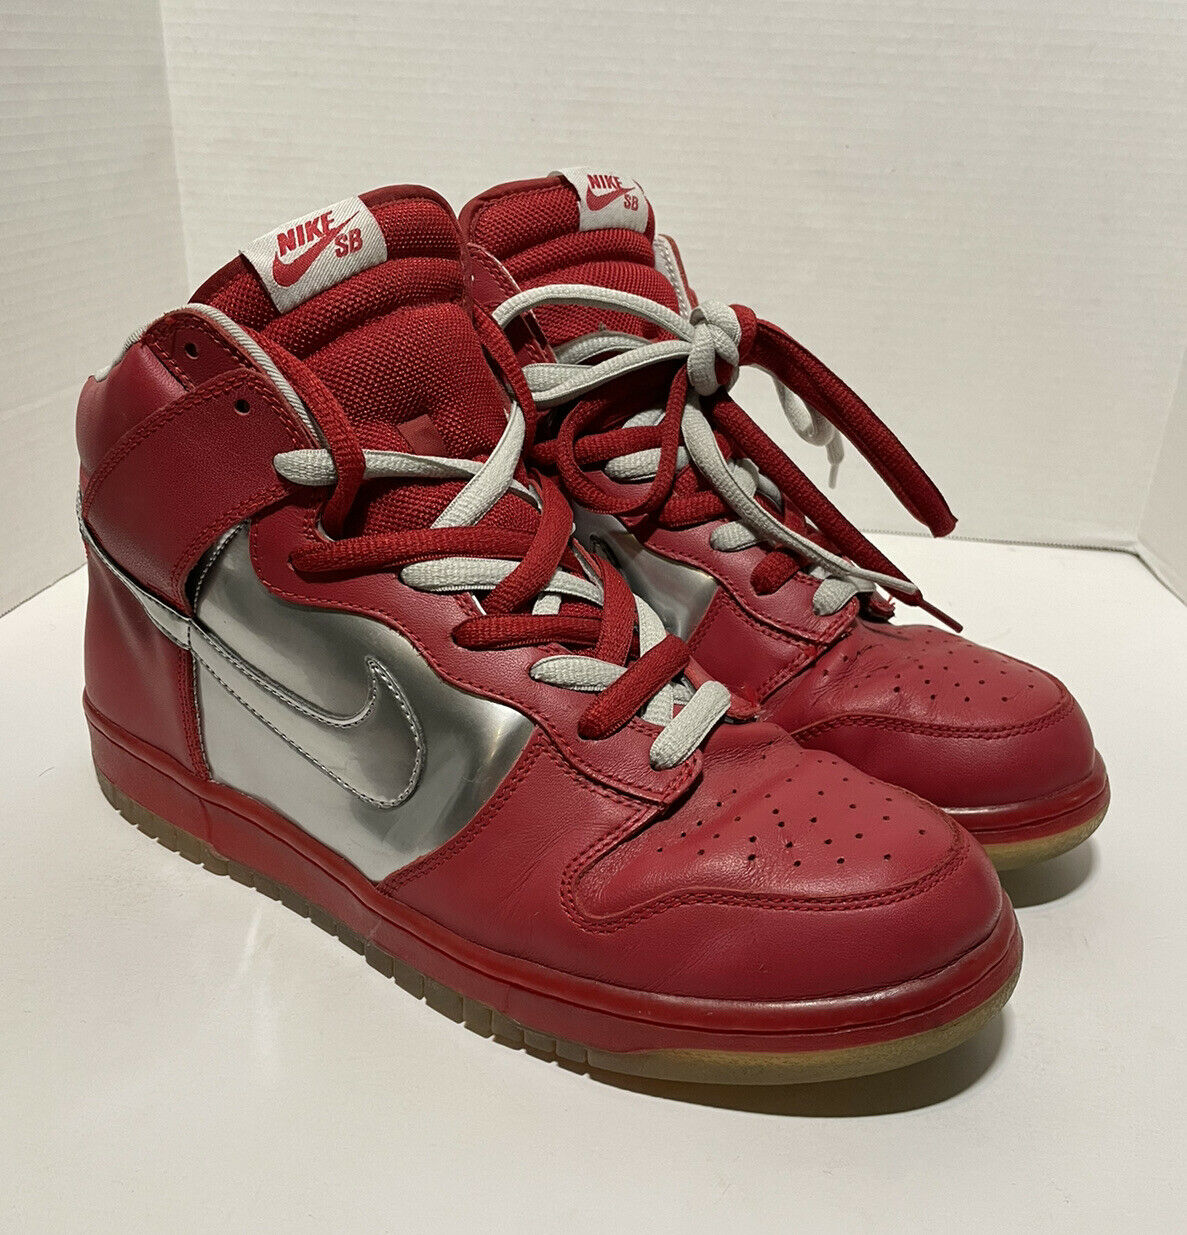 2006 Nike Mork And Mindy SB Dunk High Red/silver … - image 2